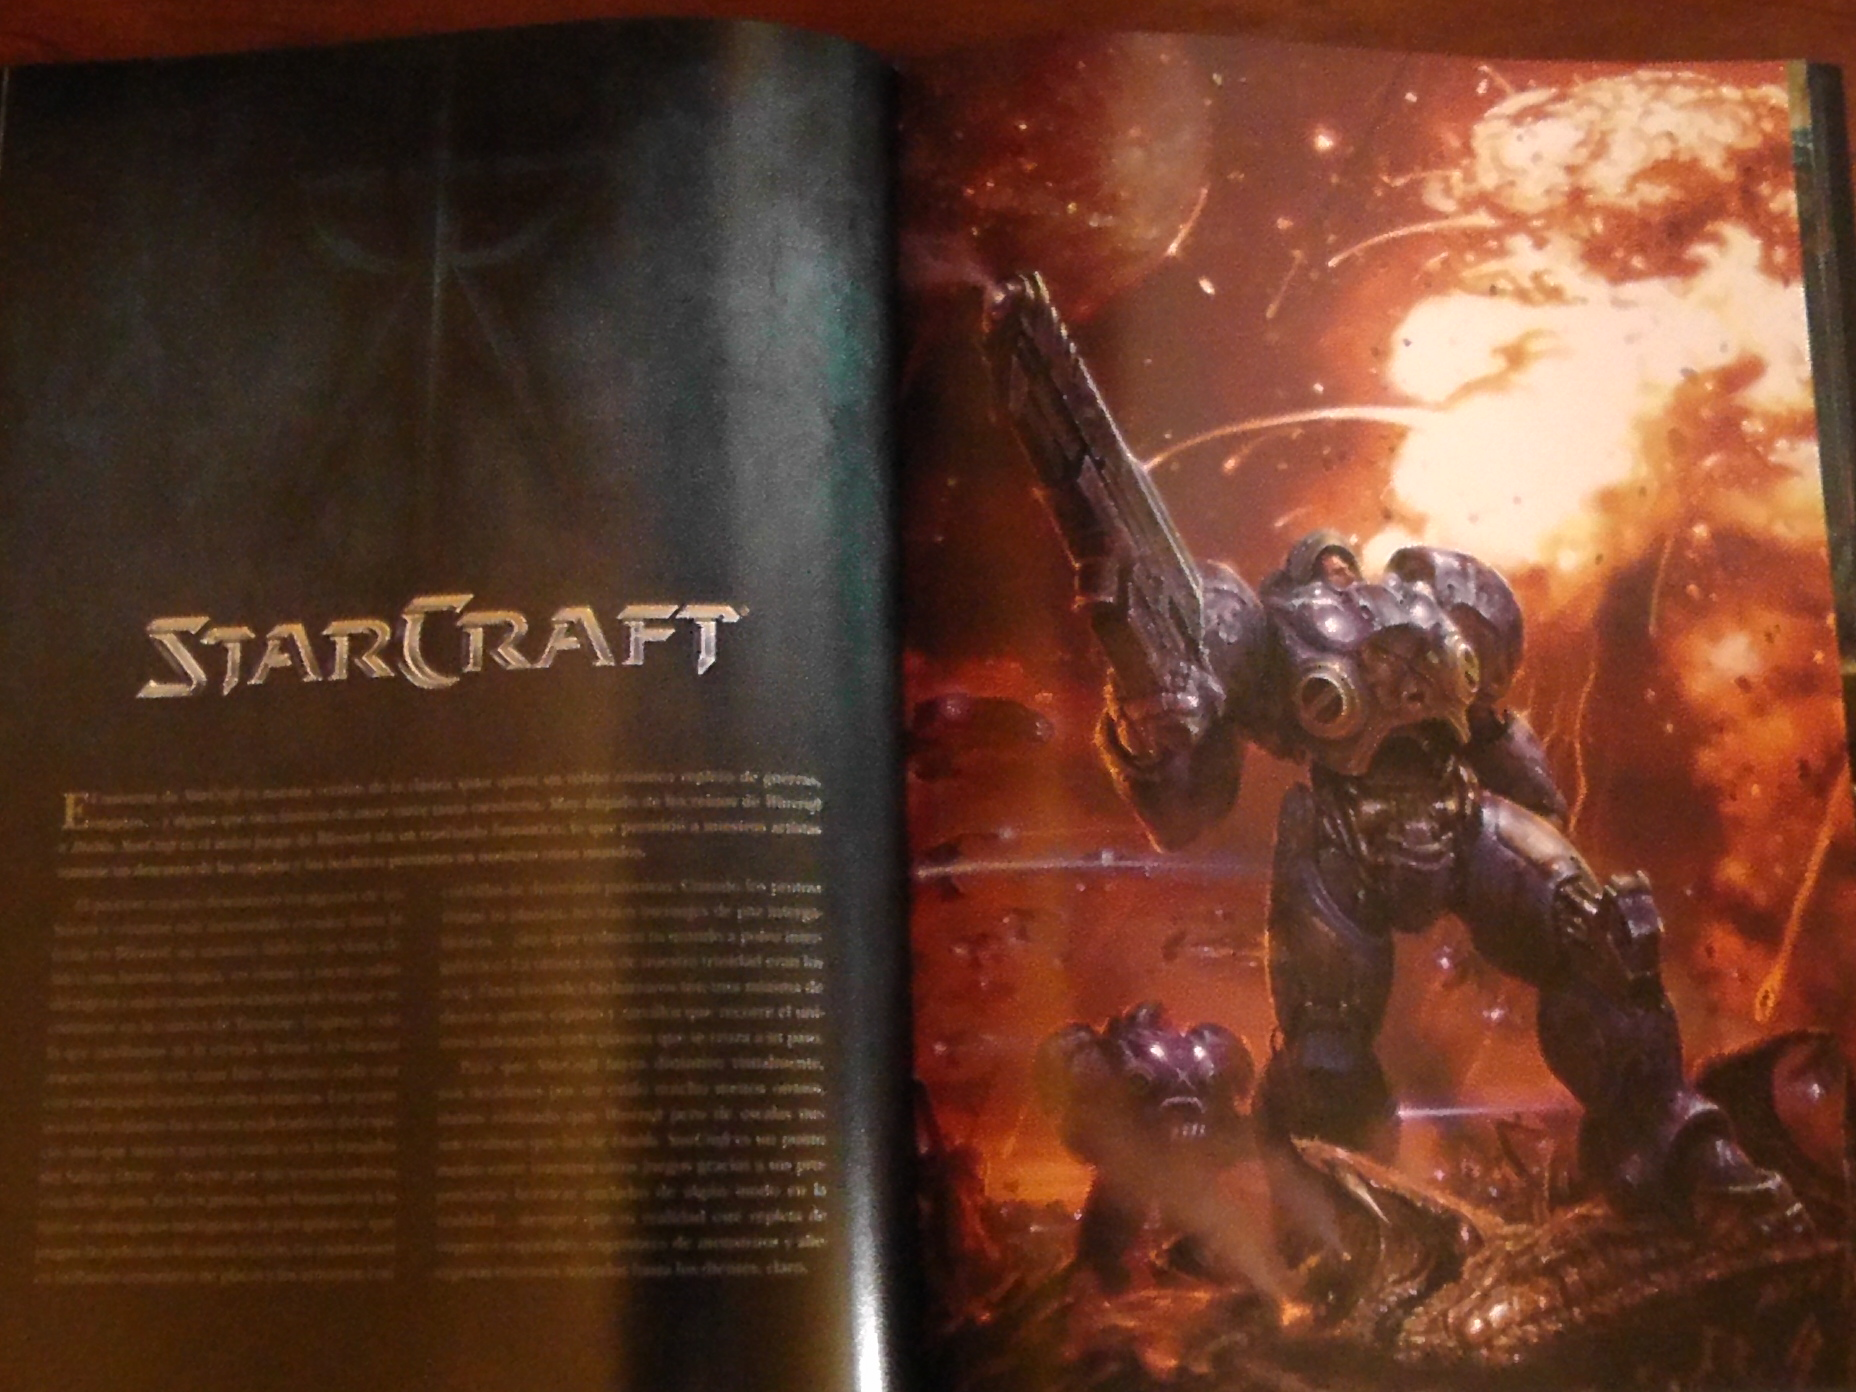 Libros De Starcraft Starcraft Esp Análisis The Art Of Blizzard Noticias